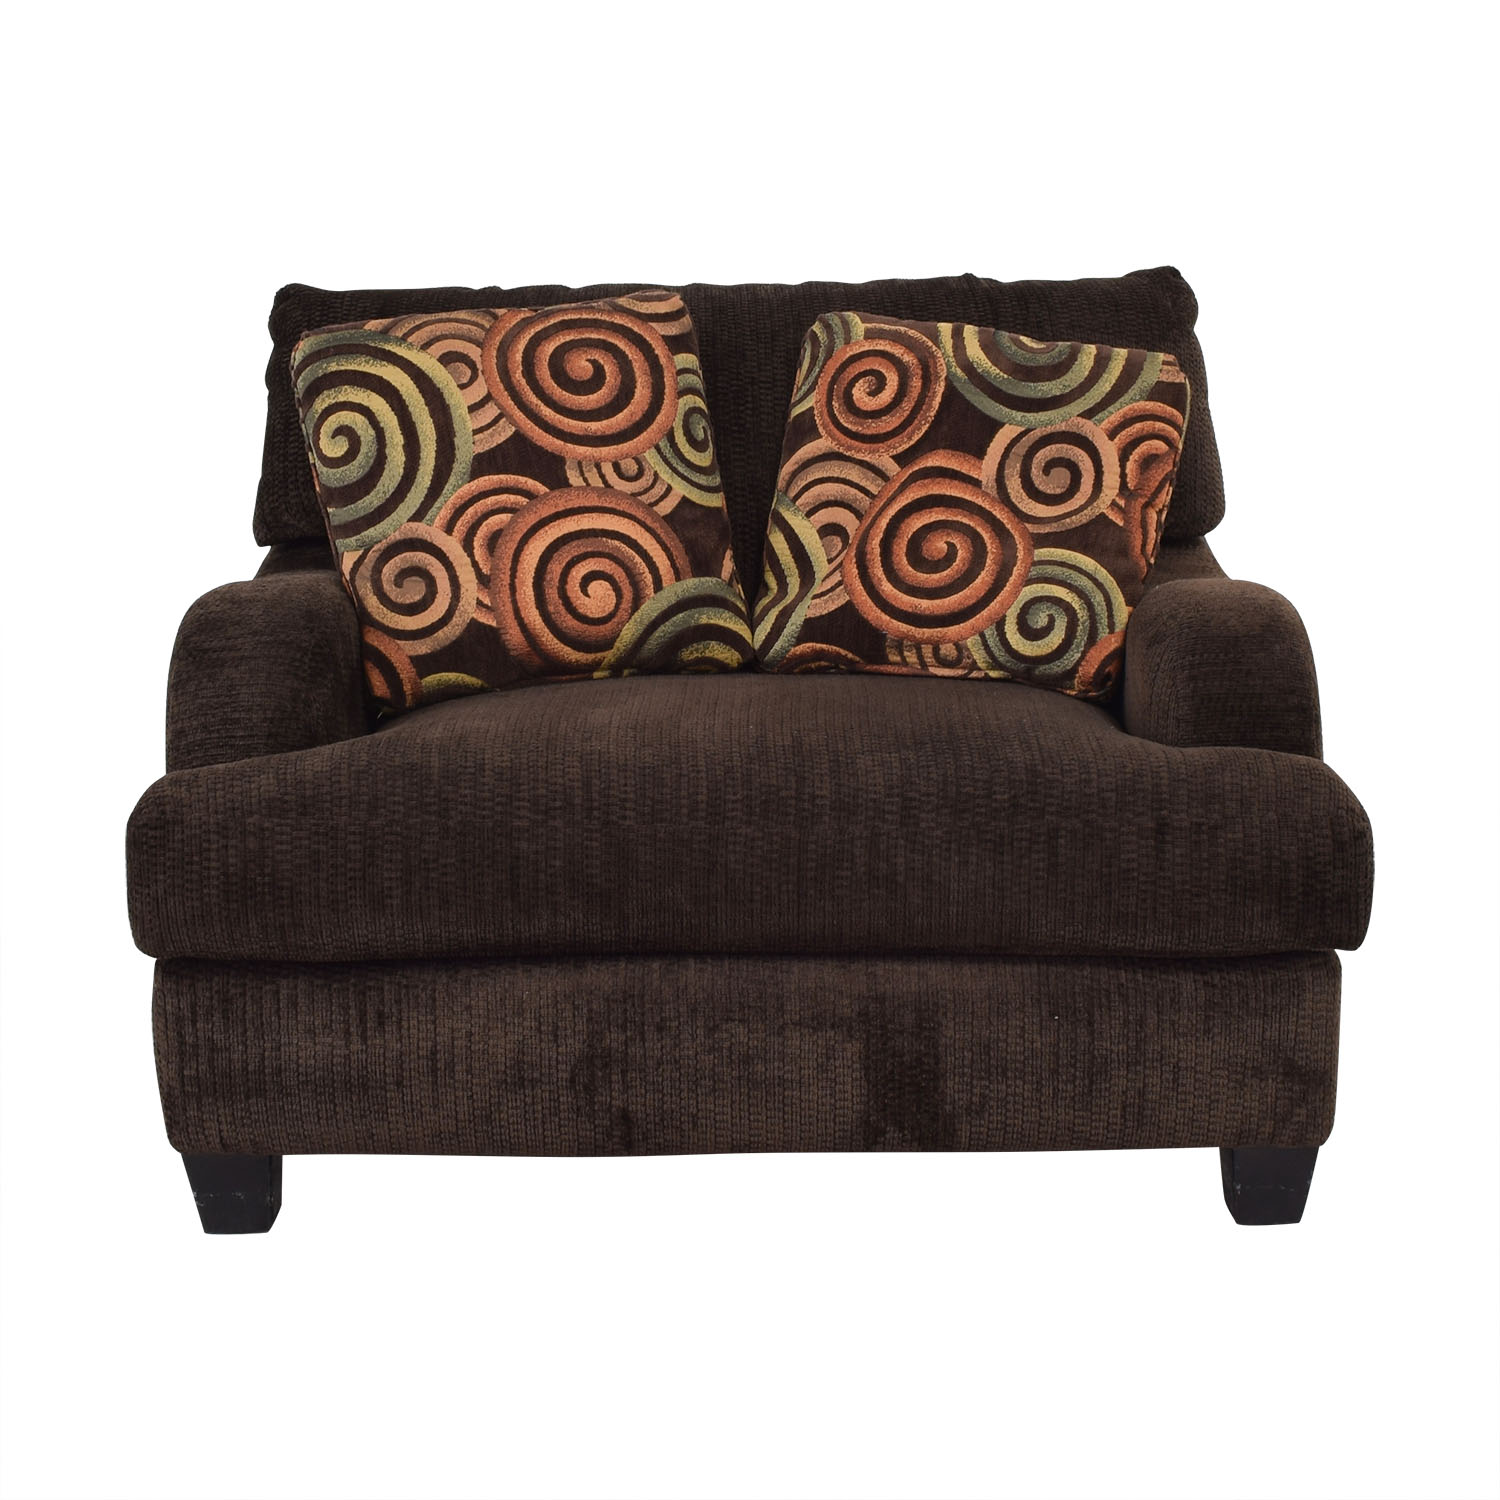 Accent Chairs To Go With Brown Leather Sofa 89 Off Bob S Discount Furniture Bob S Discount Furniture Brown